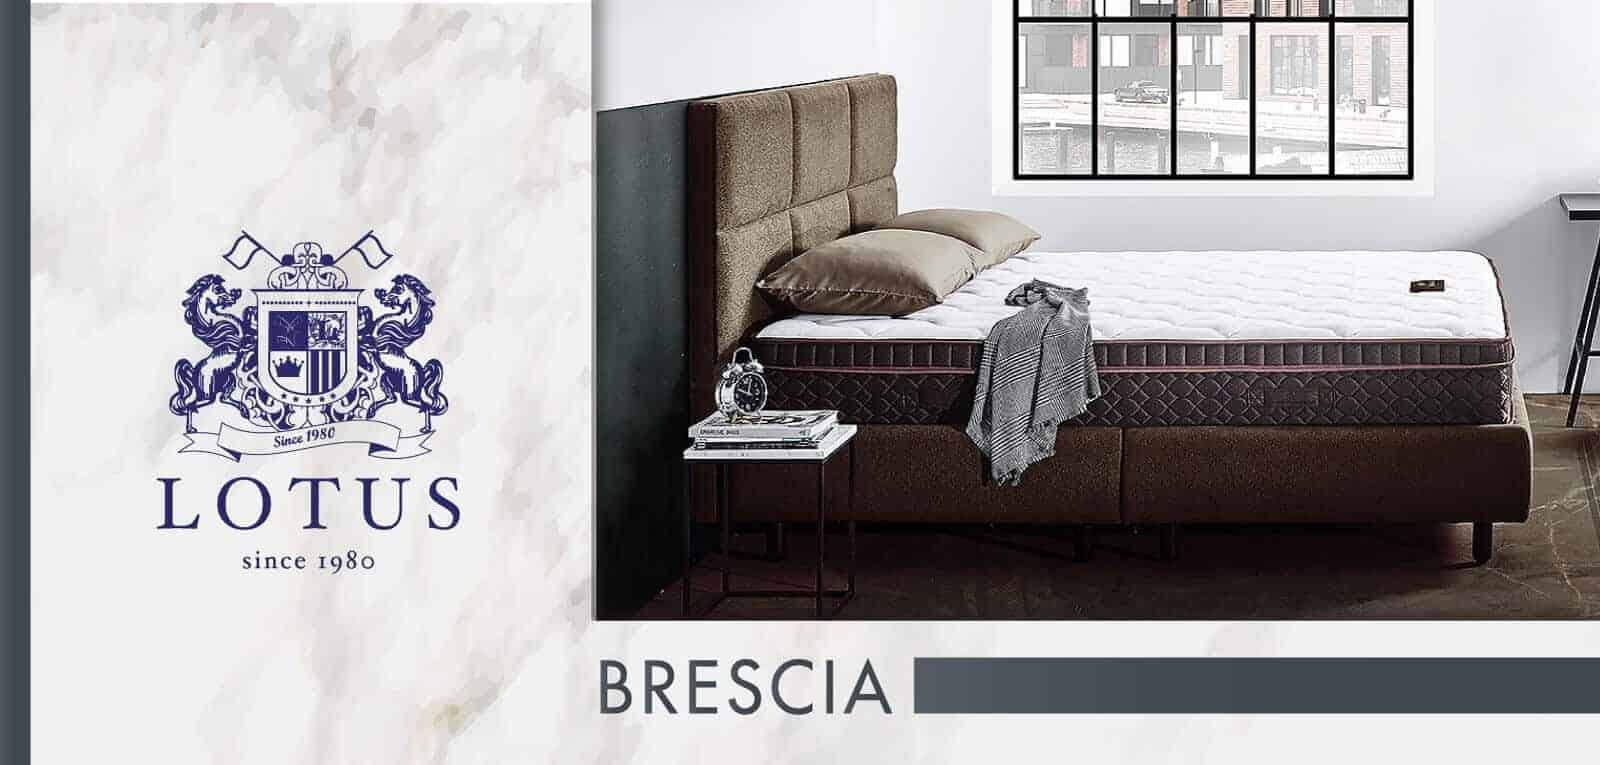 Lotus Mattress - Brescia 11